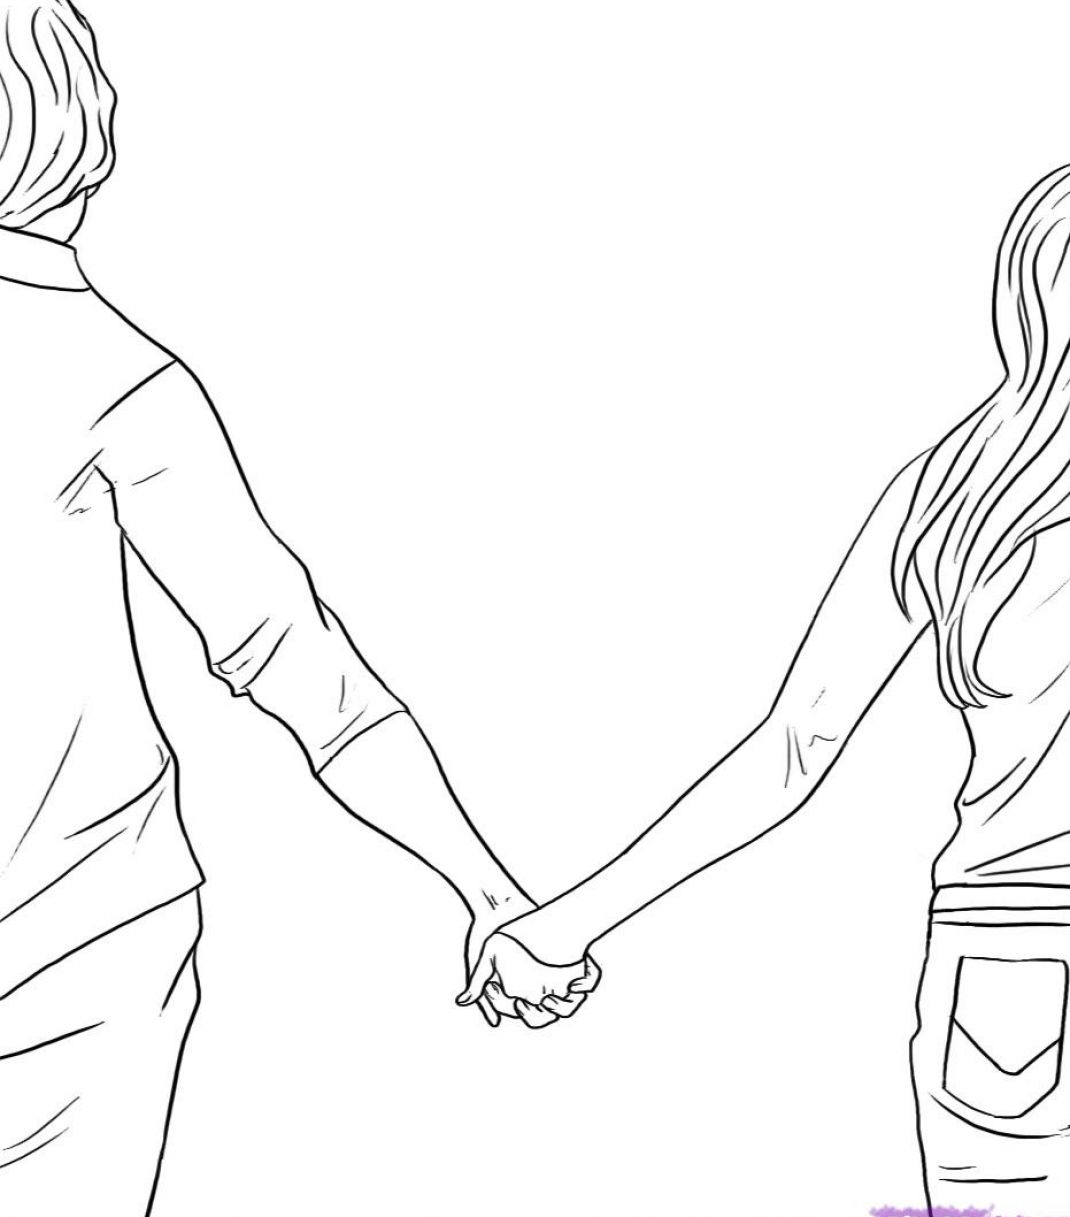 How To Draw Holding Hands Step By Step Hands People Free | Apps ...